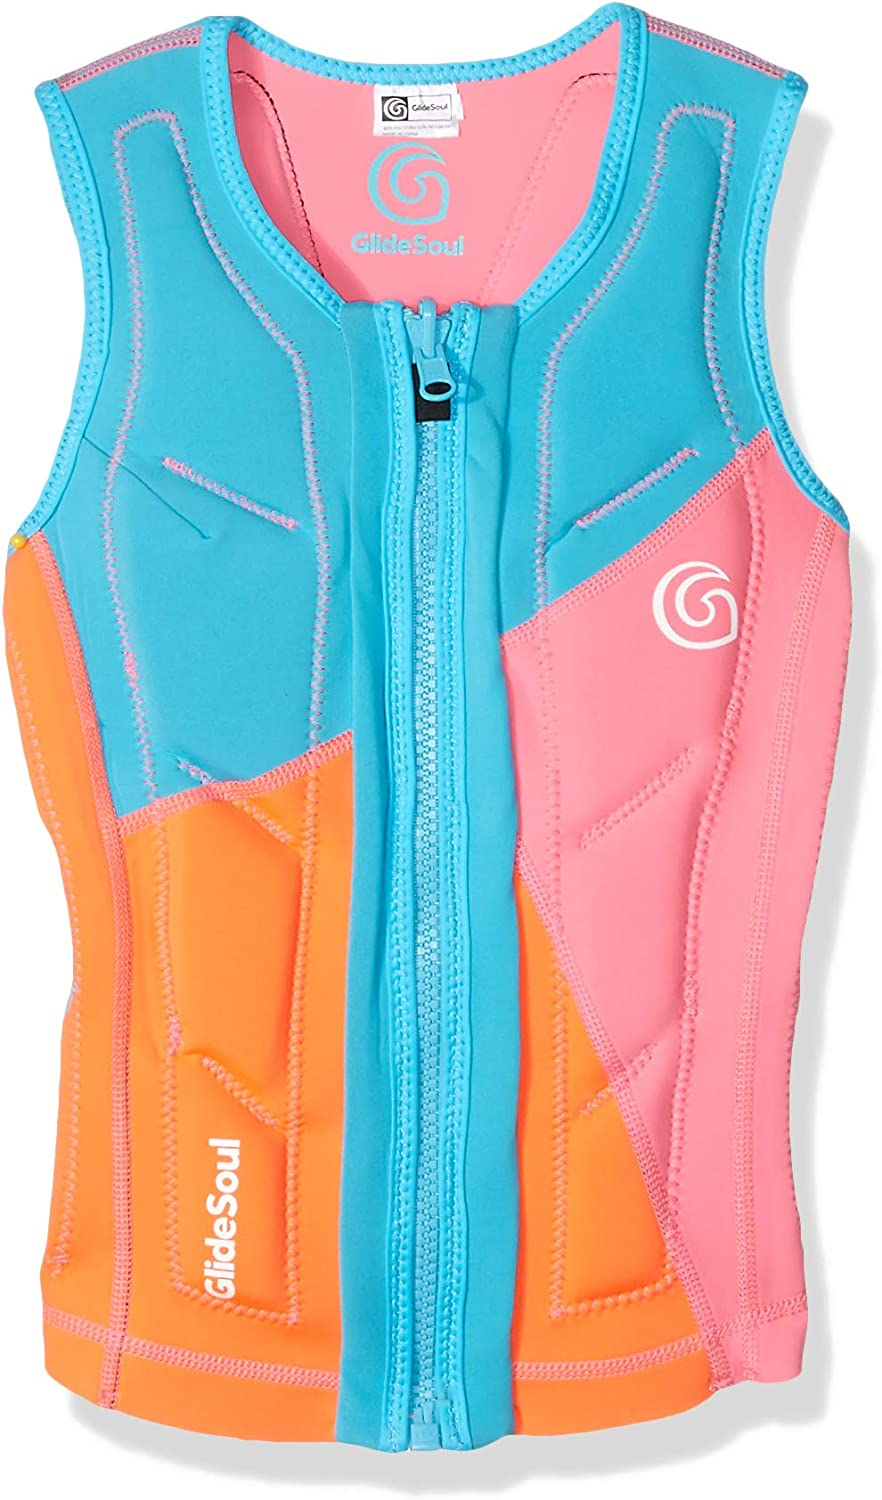 Glidesoul Women's Flashback 74 Collection Reversible Impact Vest, Peach Pink Light bluee, Small